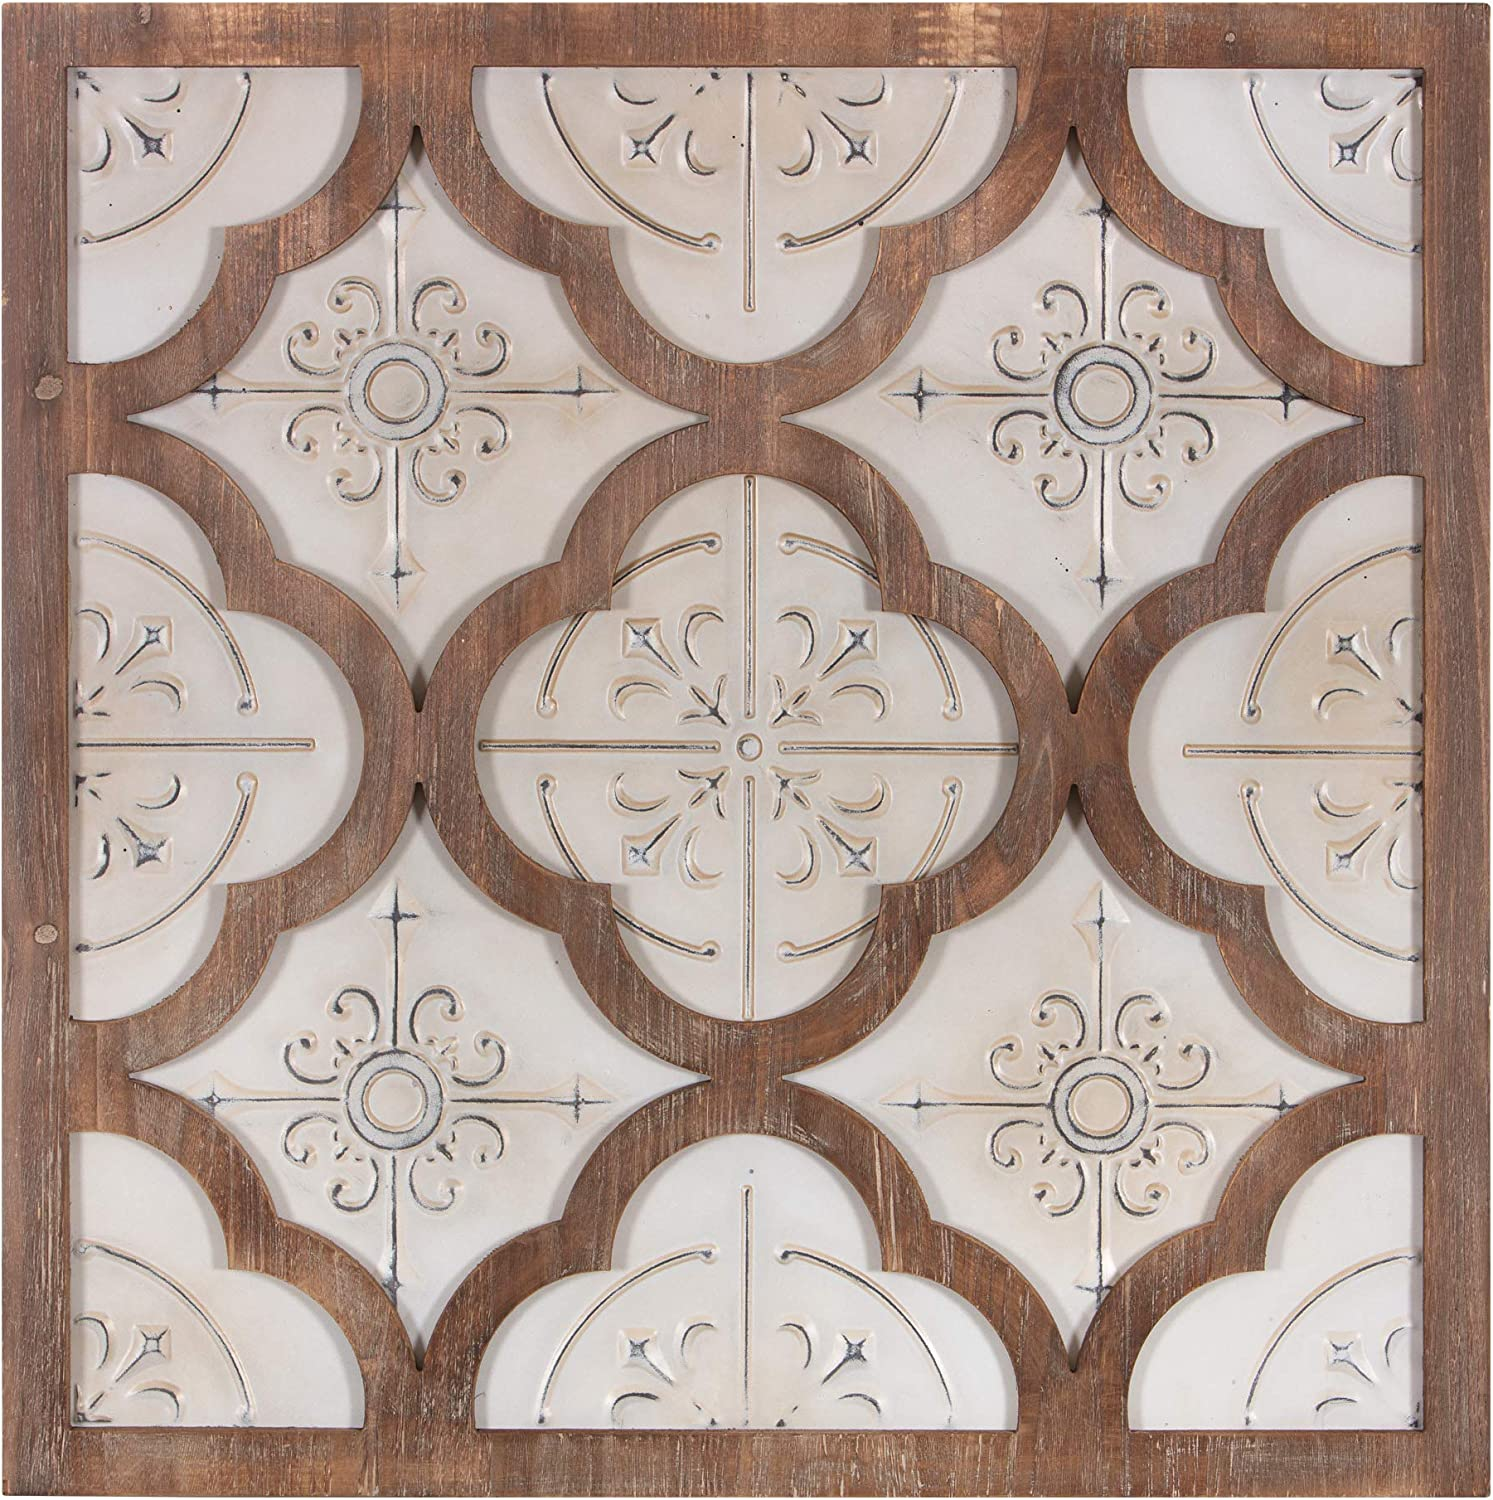 Patton Wall Decor 32 Inch Antique White Metal and Wood Quatrefoil Medallion Framed Art Wall Decor, 32 inches Wide x 32 inches Tall